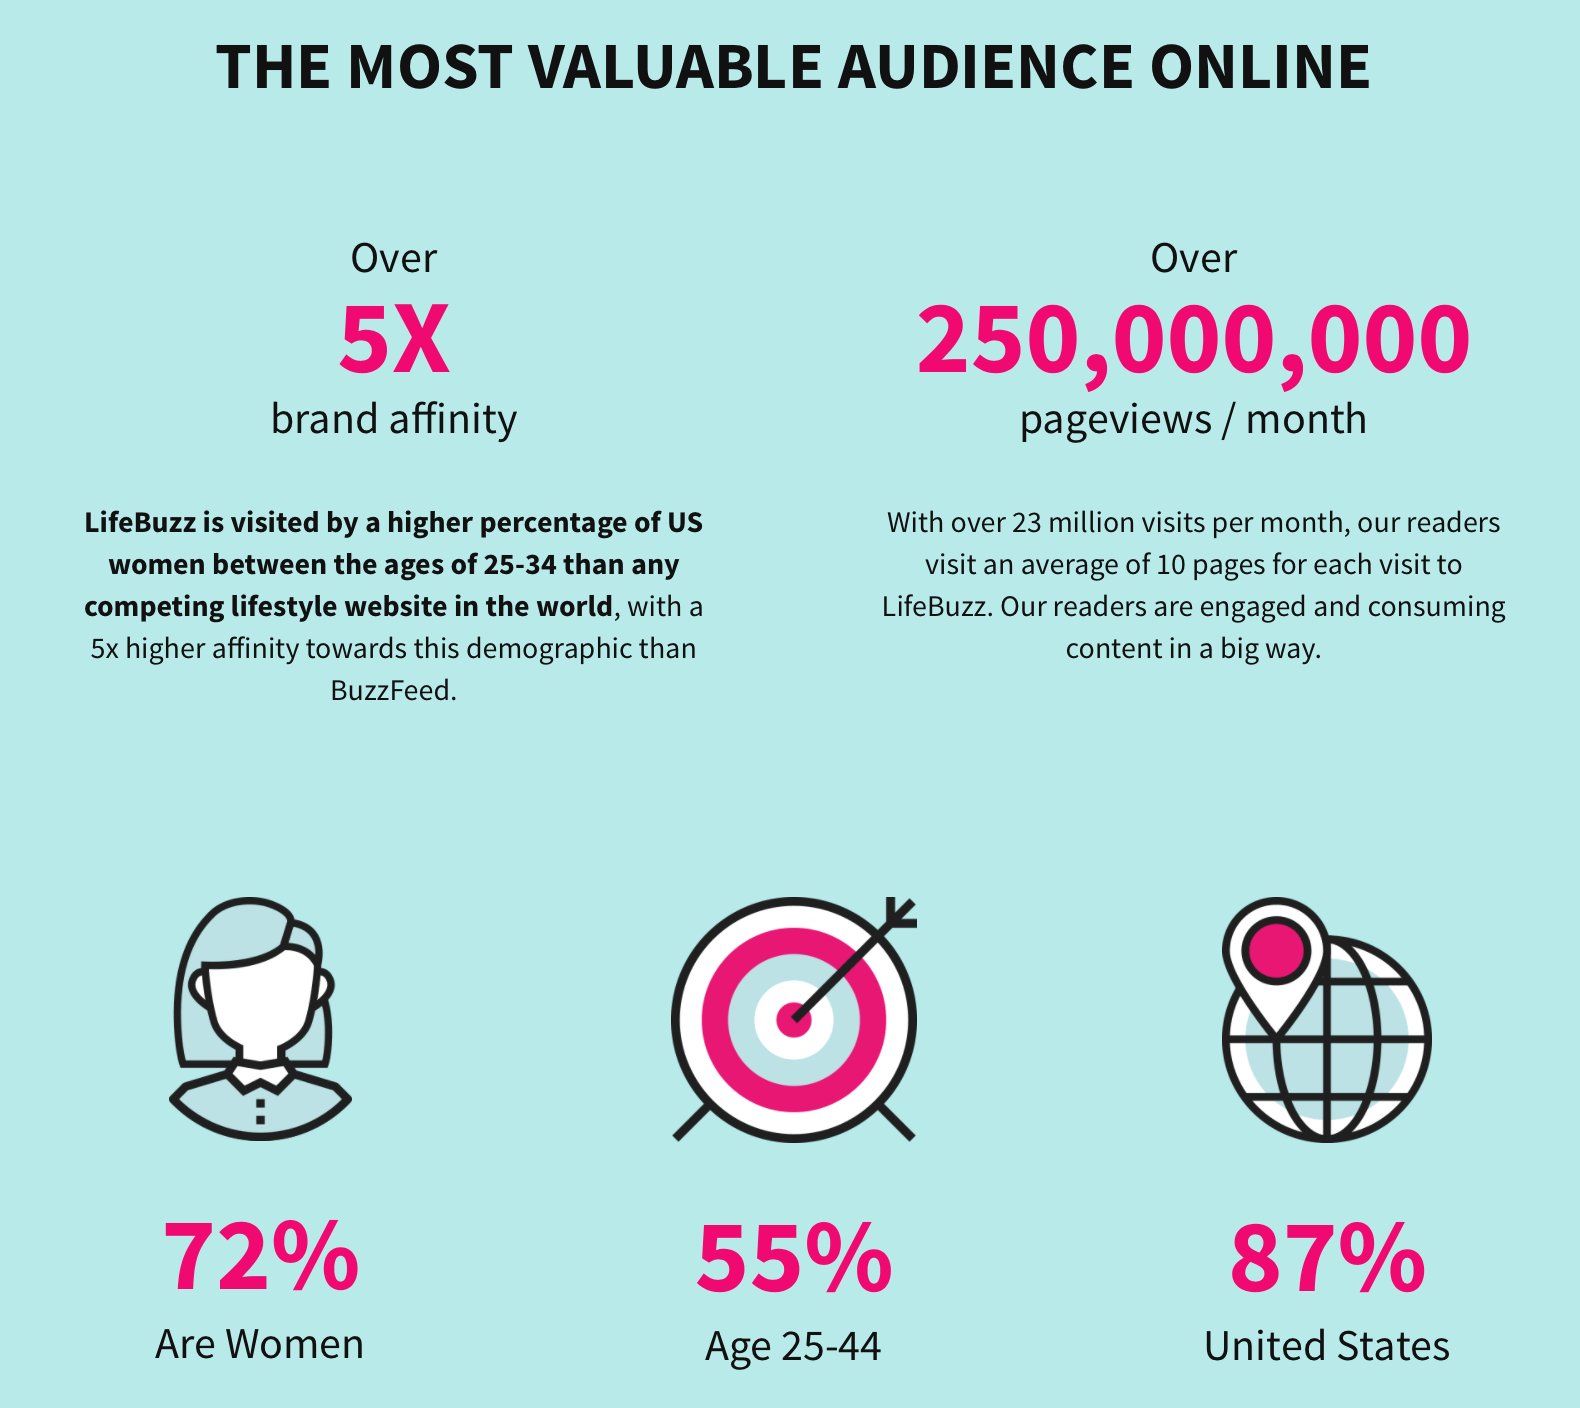 LifeBuzz: Most valuable audience